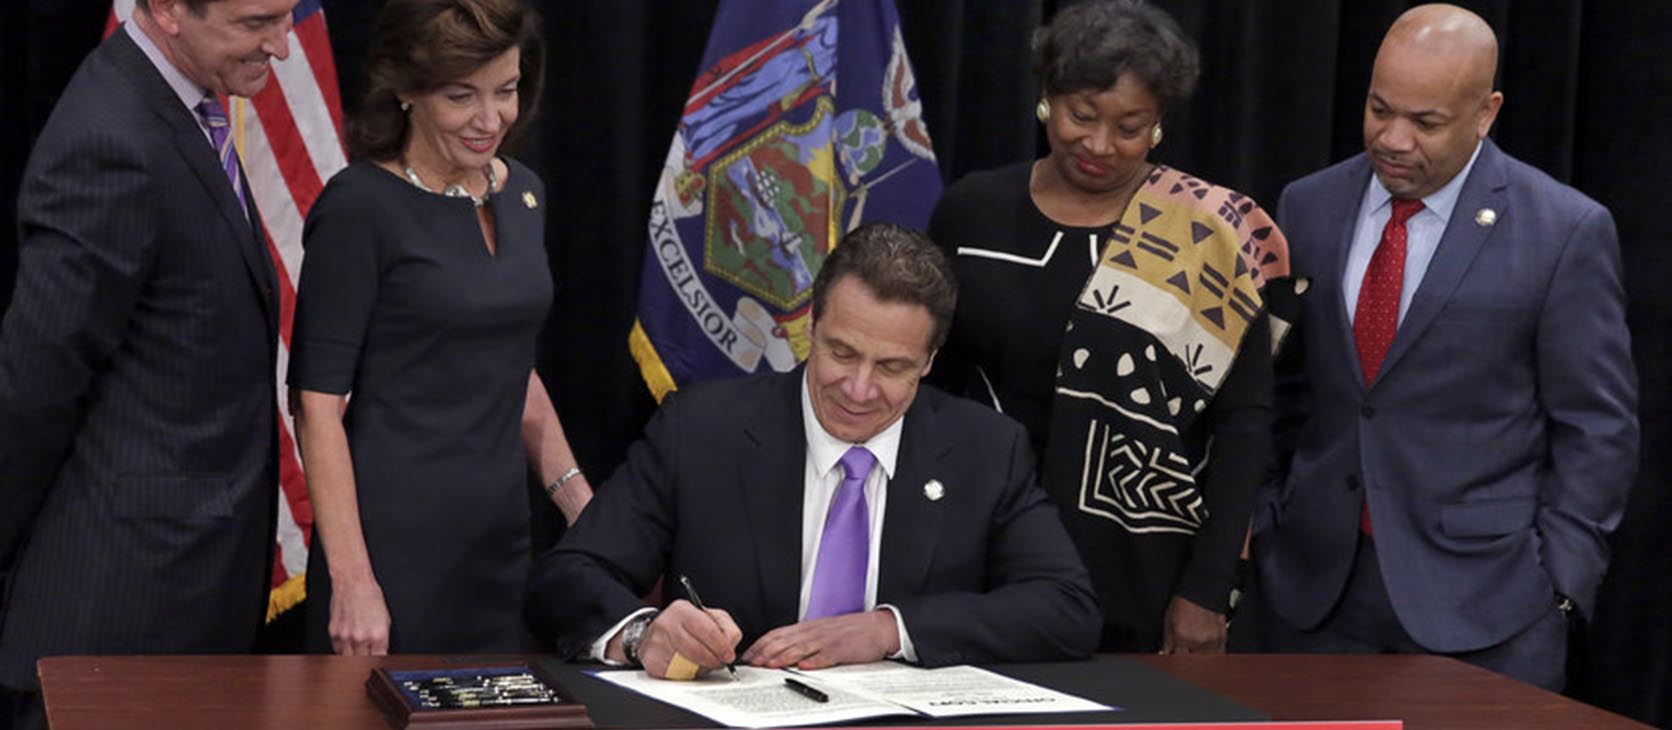 NY to Mandate Paid Family Leave Policy